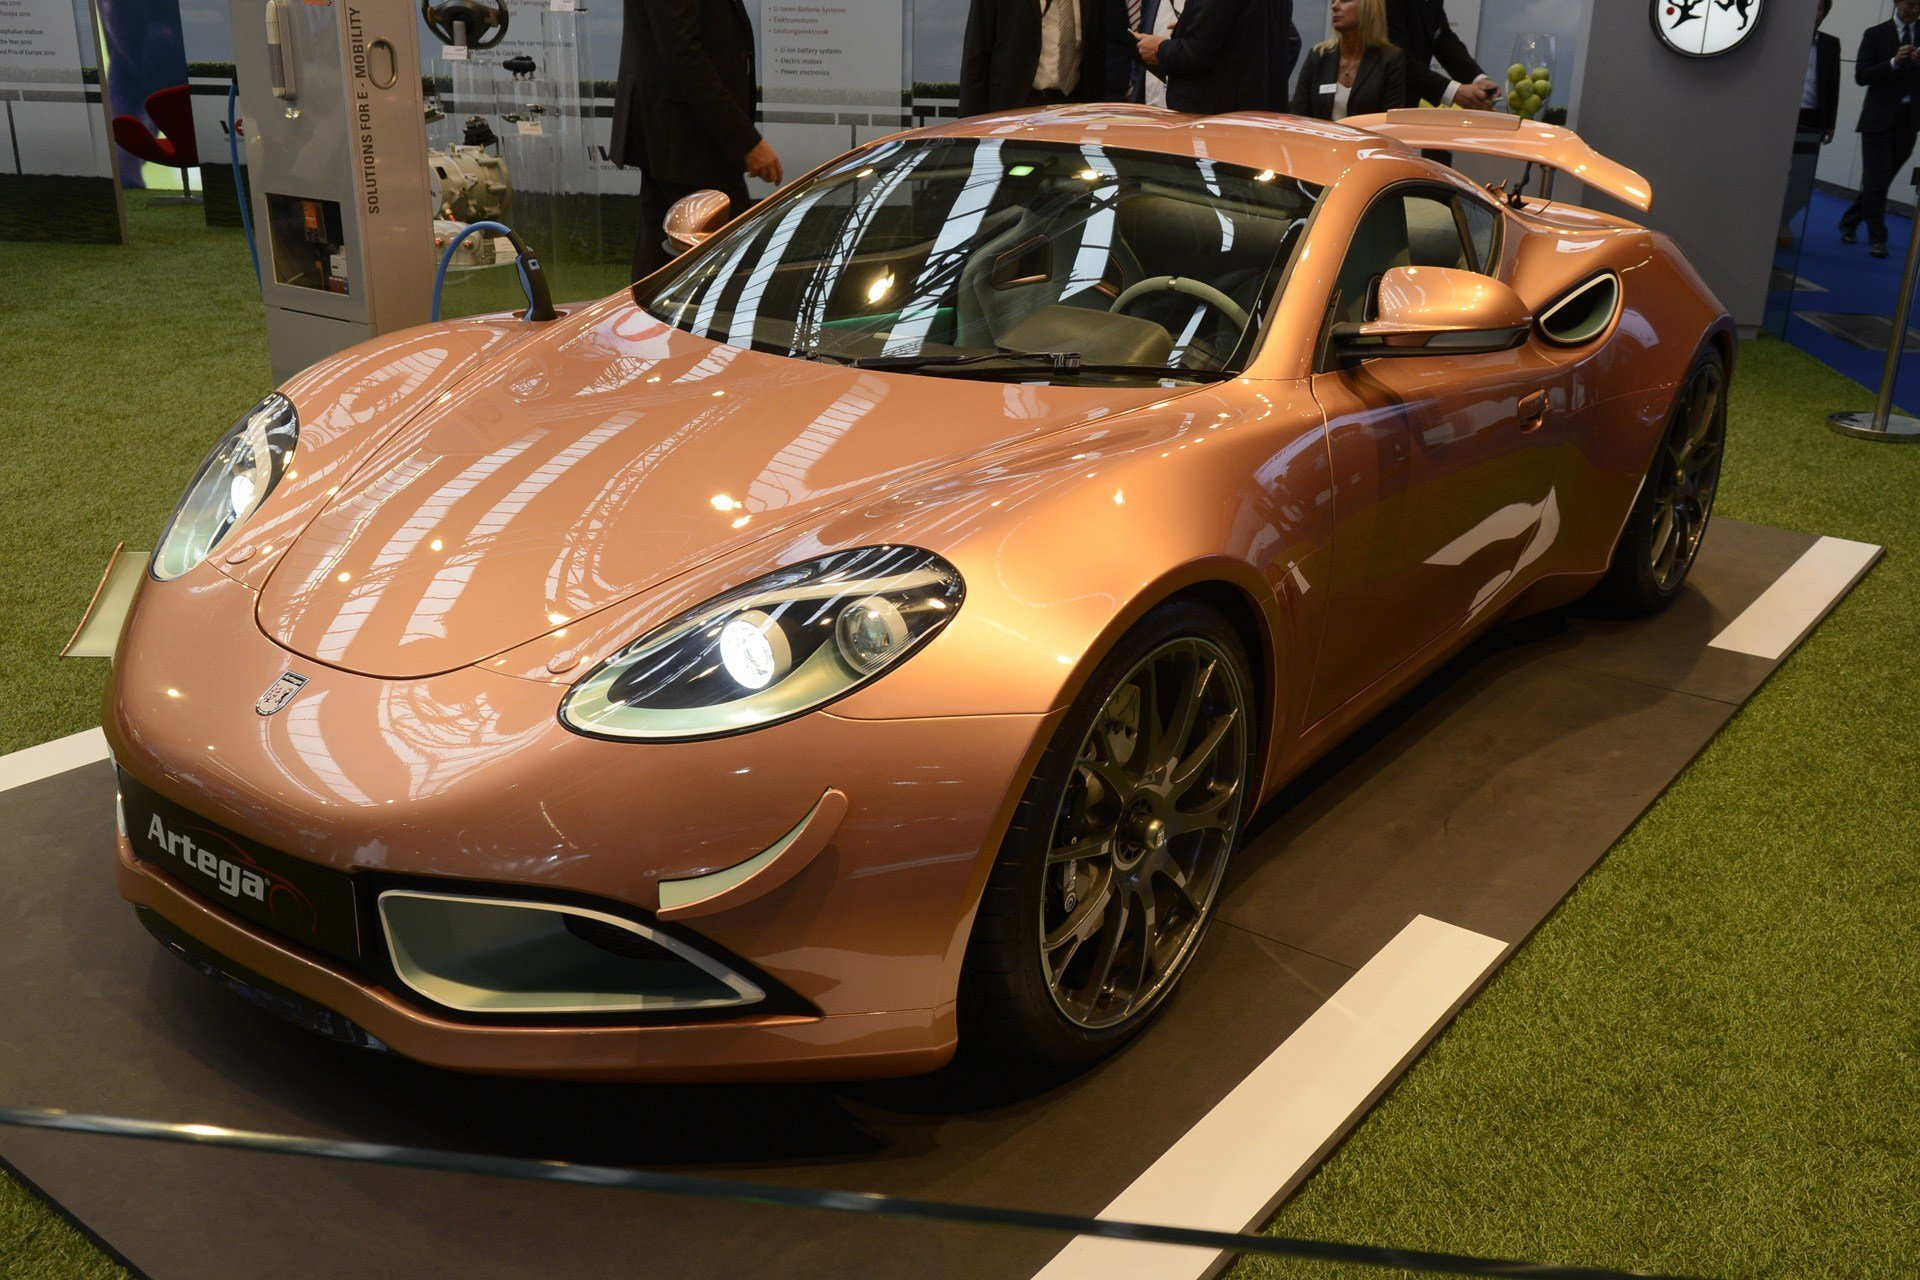 Latest Germany's Artega Reborn As Electric Sports Car And Free Download